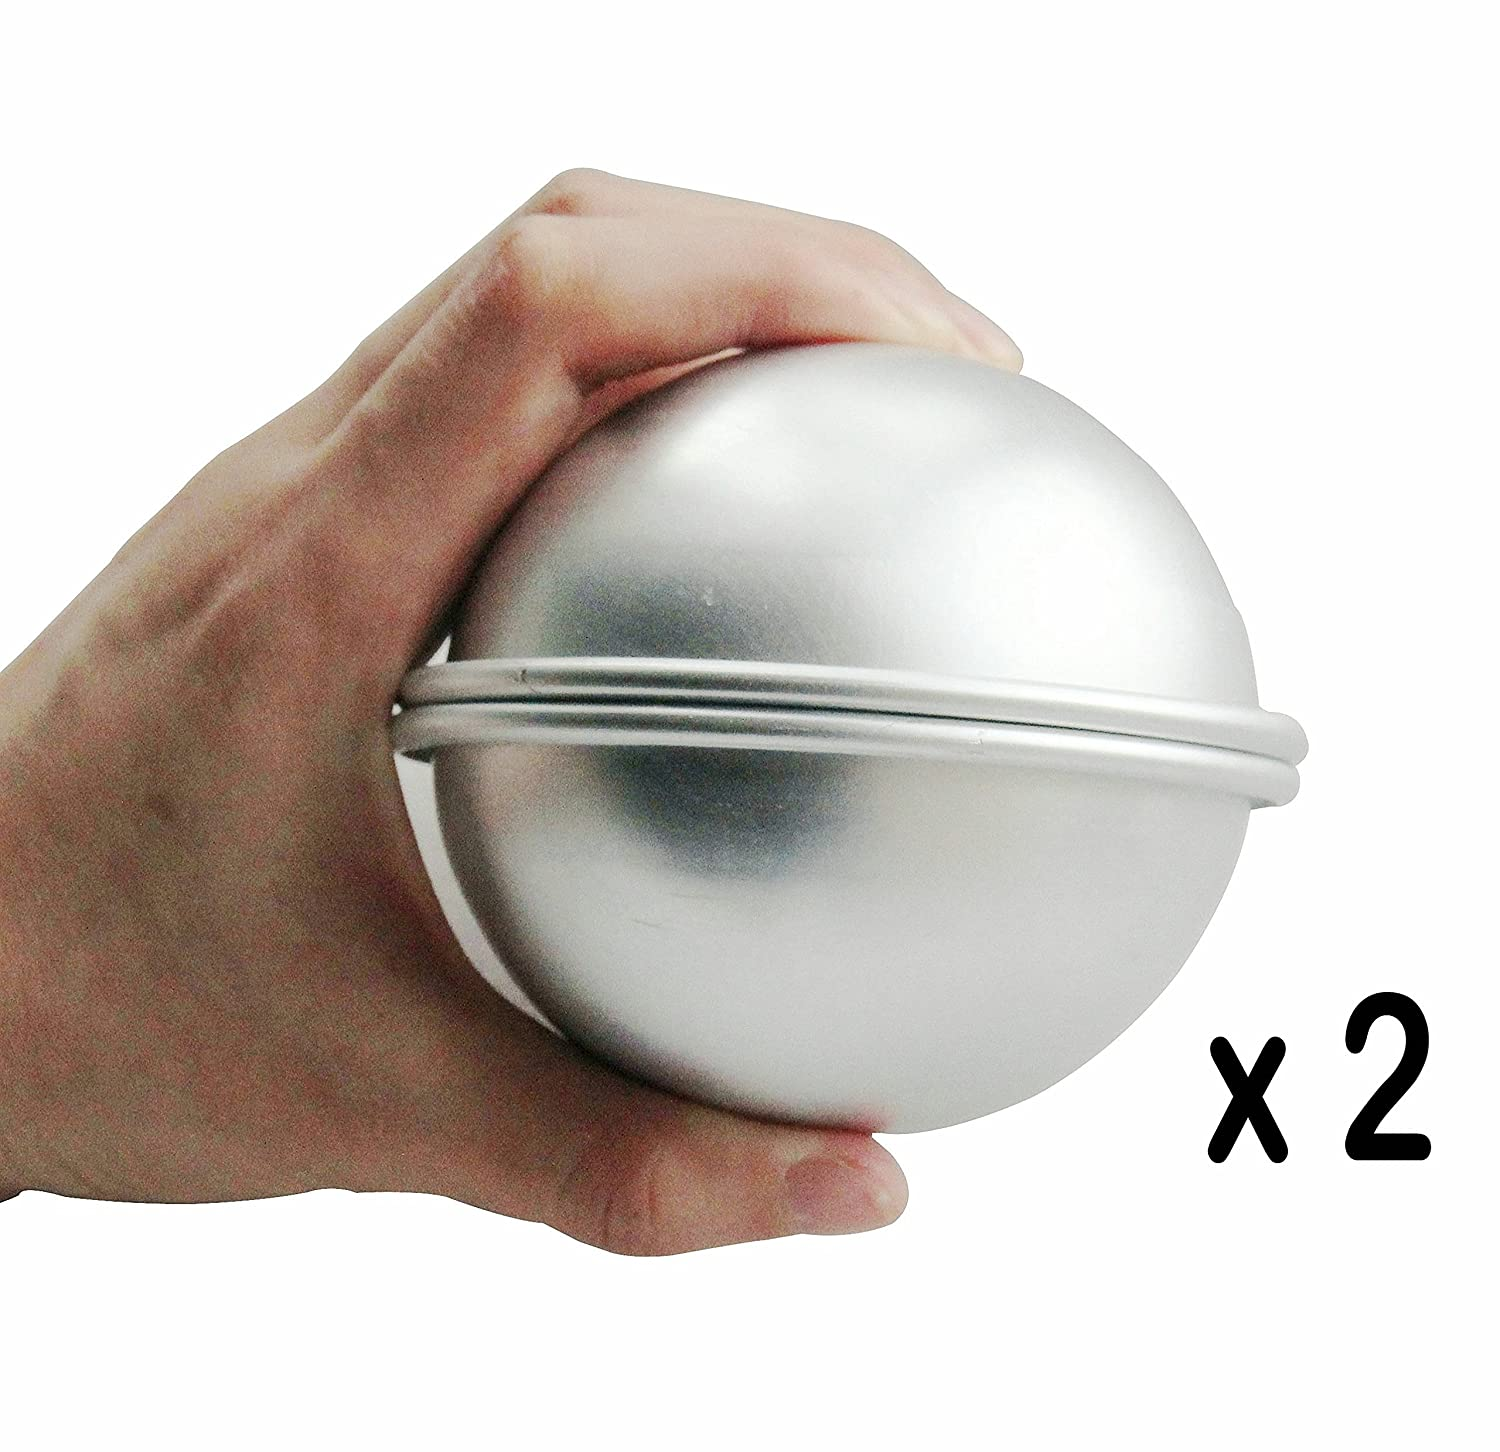 Extra Large Size Make 8 cm//3.15 inch Diameter Incredible Ball by ROUNDSQUARE 2 Set 4 Pieces Bath Bomb Mold